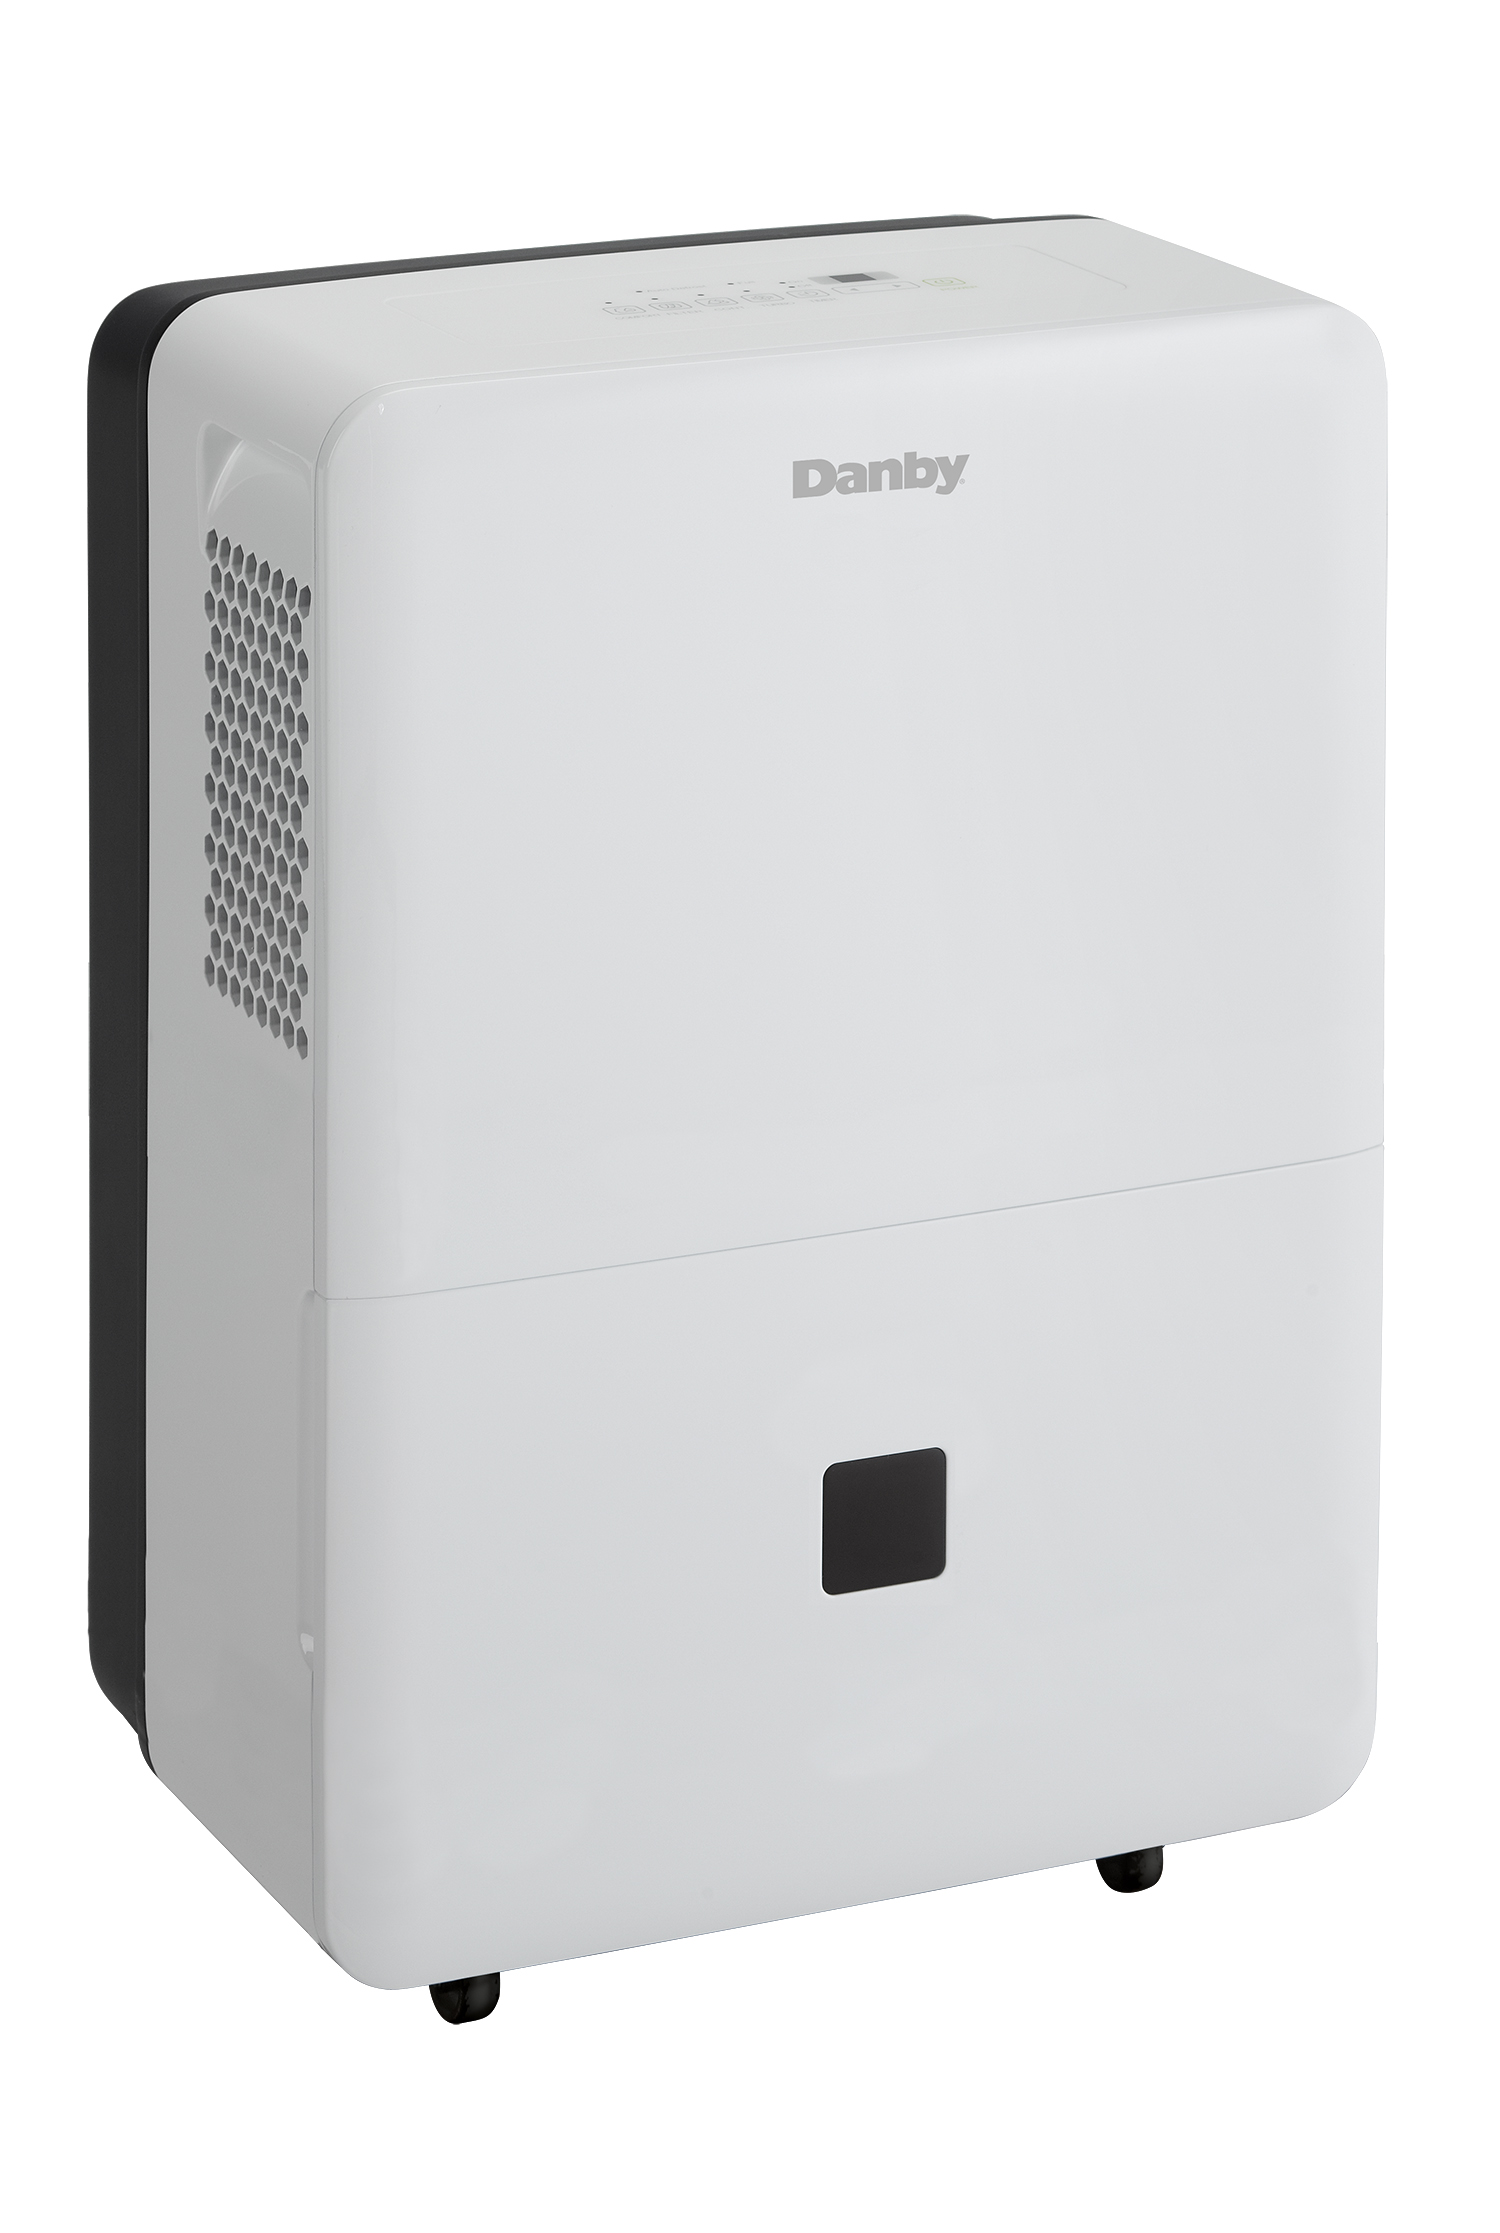 ddr050bdwdb danby 50 pint dehumidifier en us rh danby com Danby Silhouette Dehumidifier Owner's Manual danby premiere dehumidifier r410a instructions